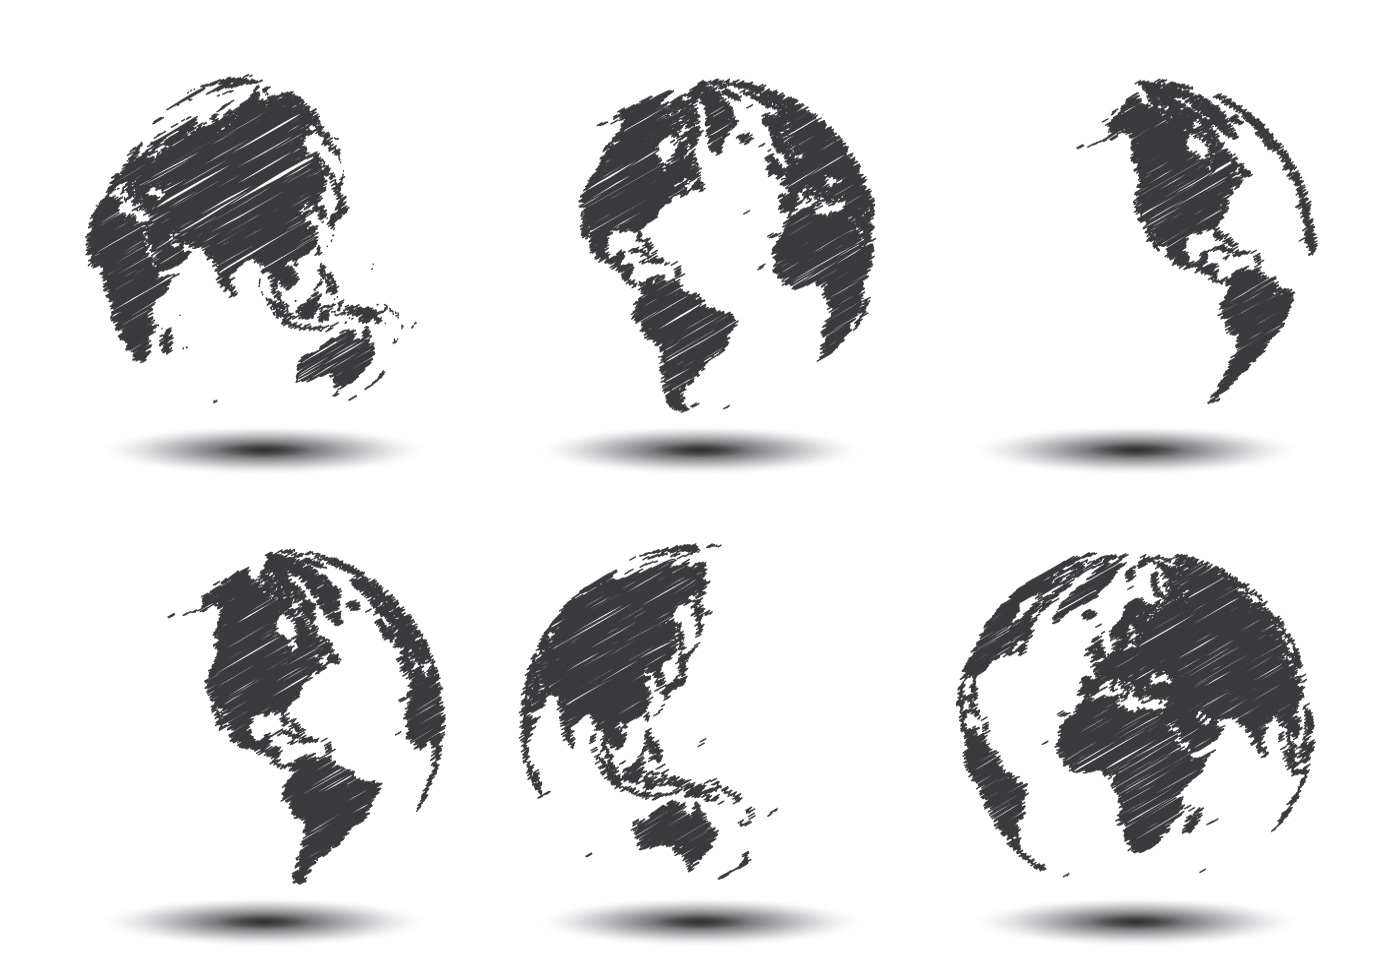 Sketch world map vectors download free vector art stock for Sketch online free